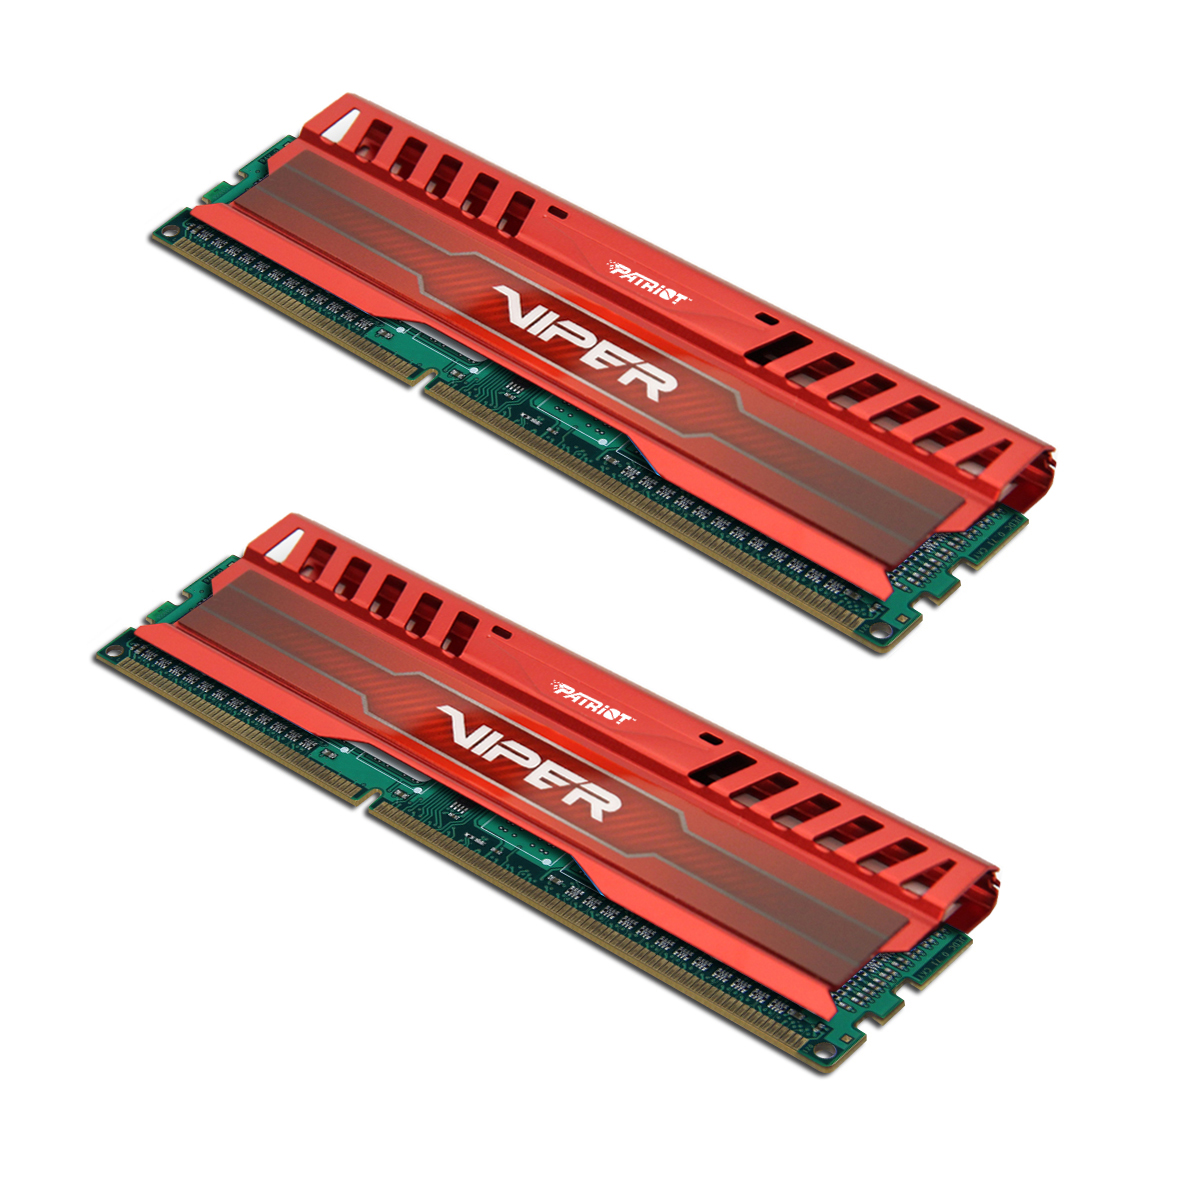 Viper3_Red_Dual_Left_Green PCB